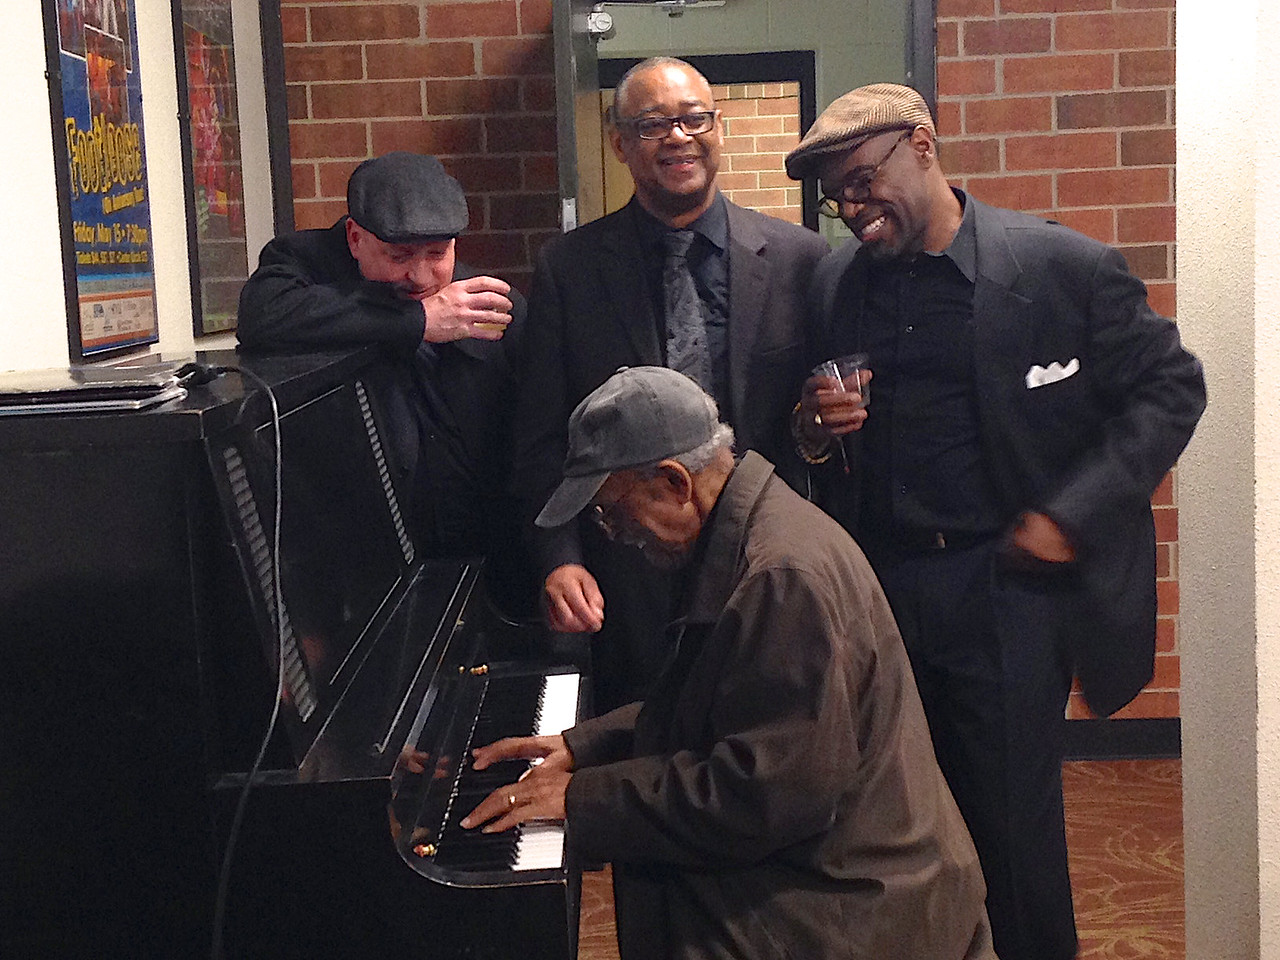 Deda's sis, Terri, captured this great moment of members of the Dizzy Gillespie Big Band having fun backstage after the concert. This was at Amy's UNC Jazz festival in April, 2017.